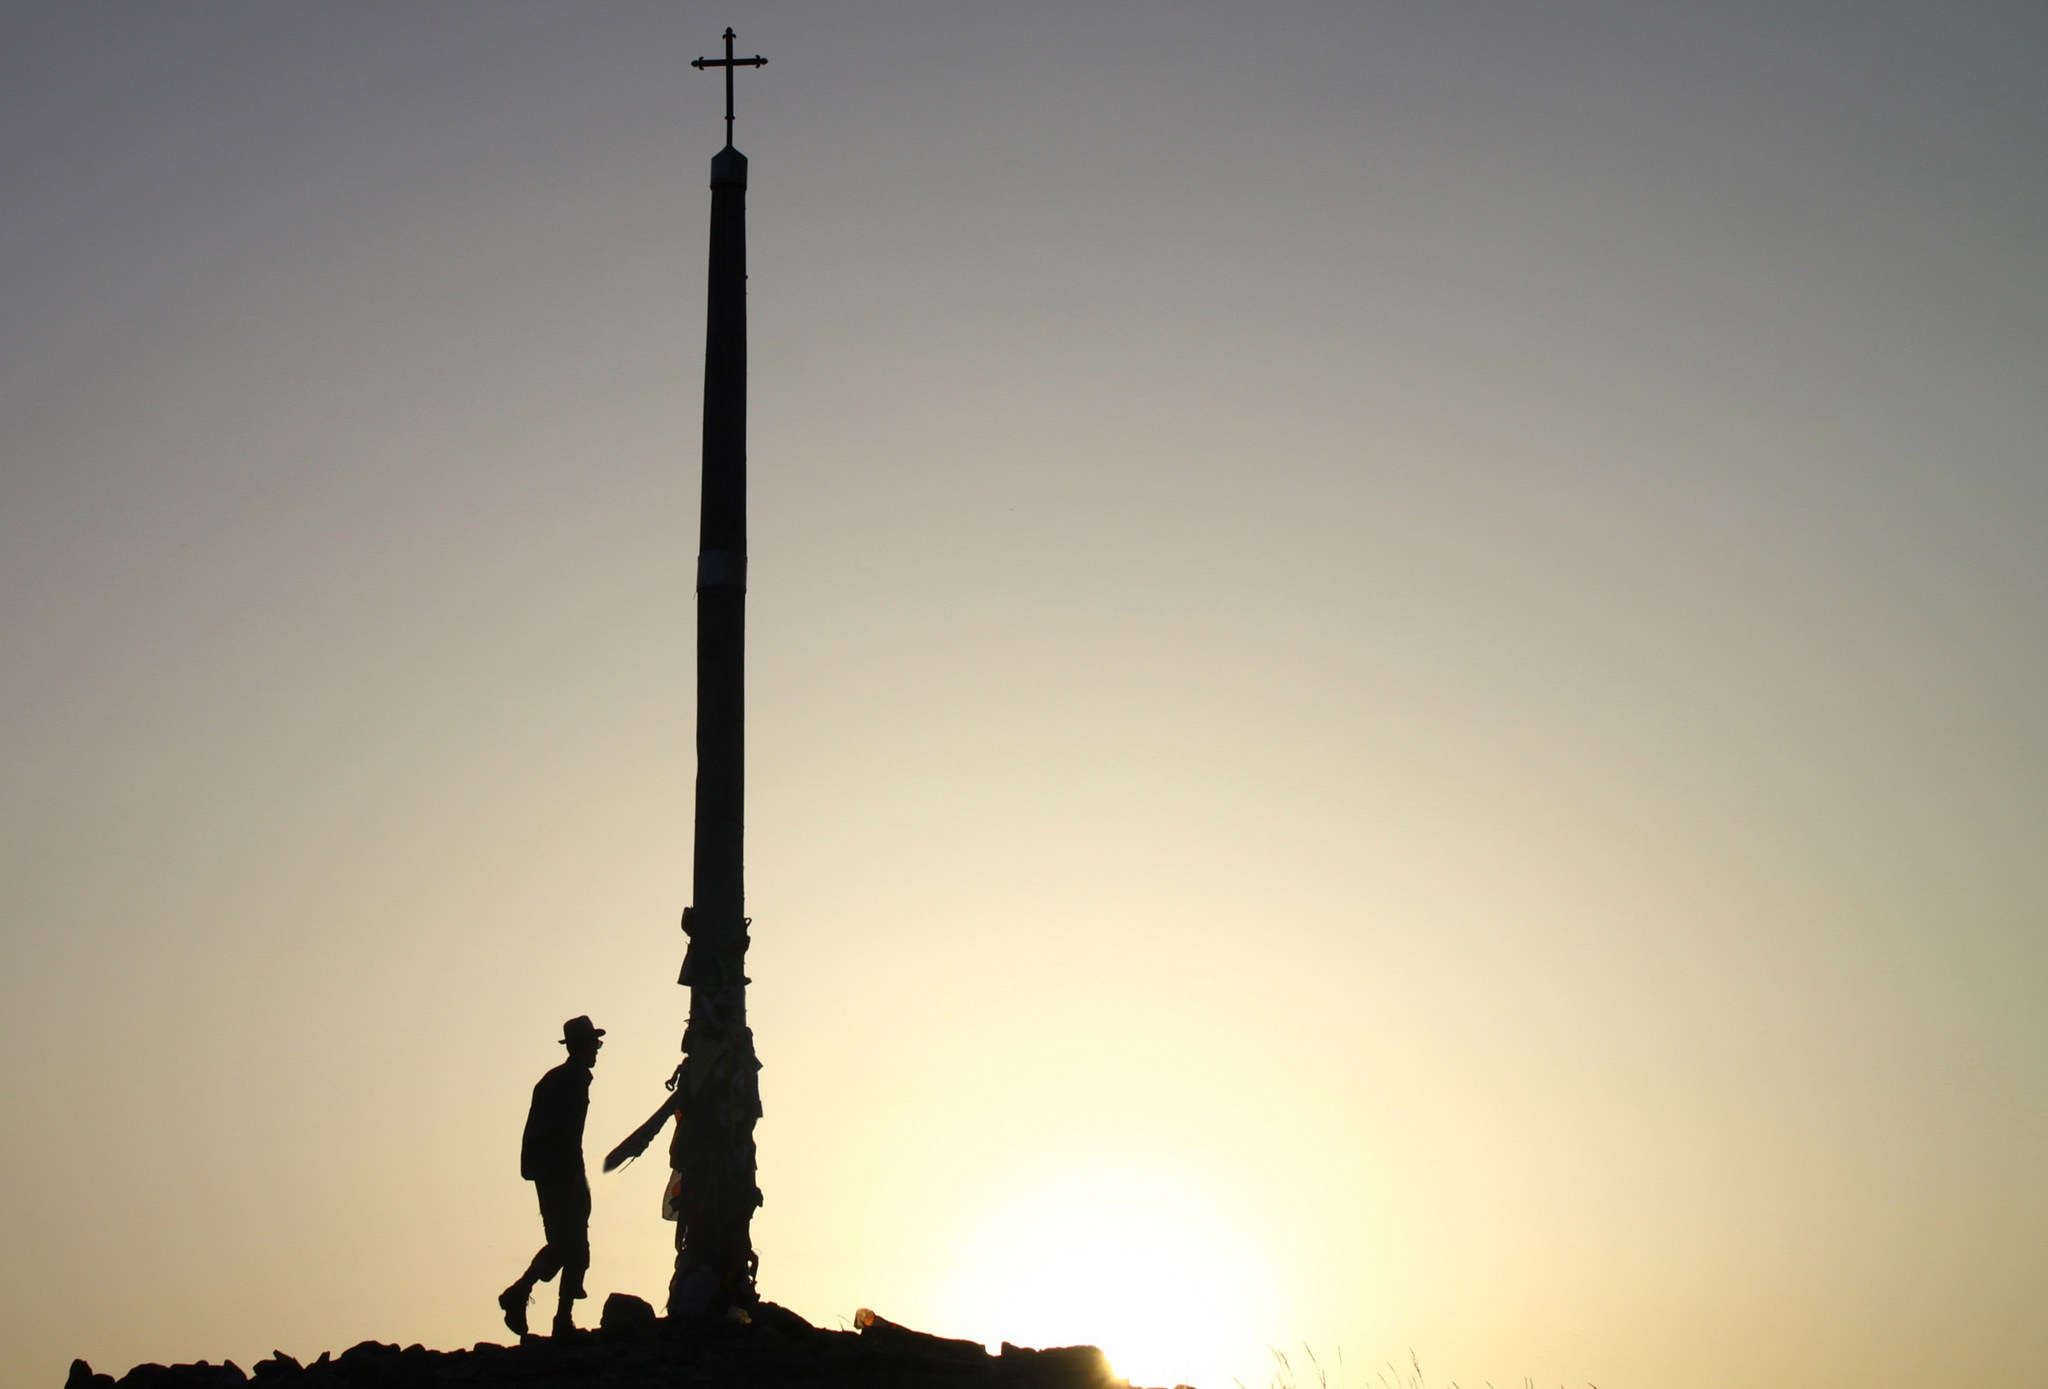 Pilgrim watching the sunrise from the Cruz de Ferro